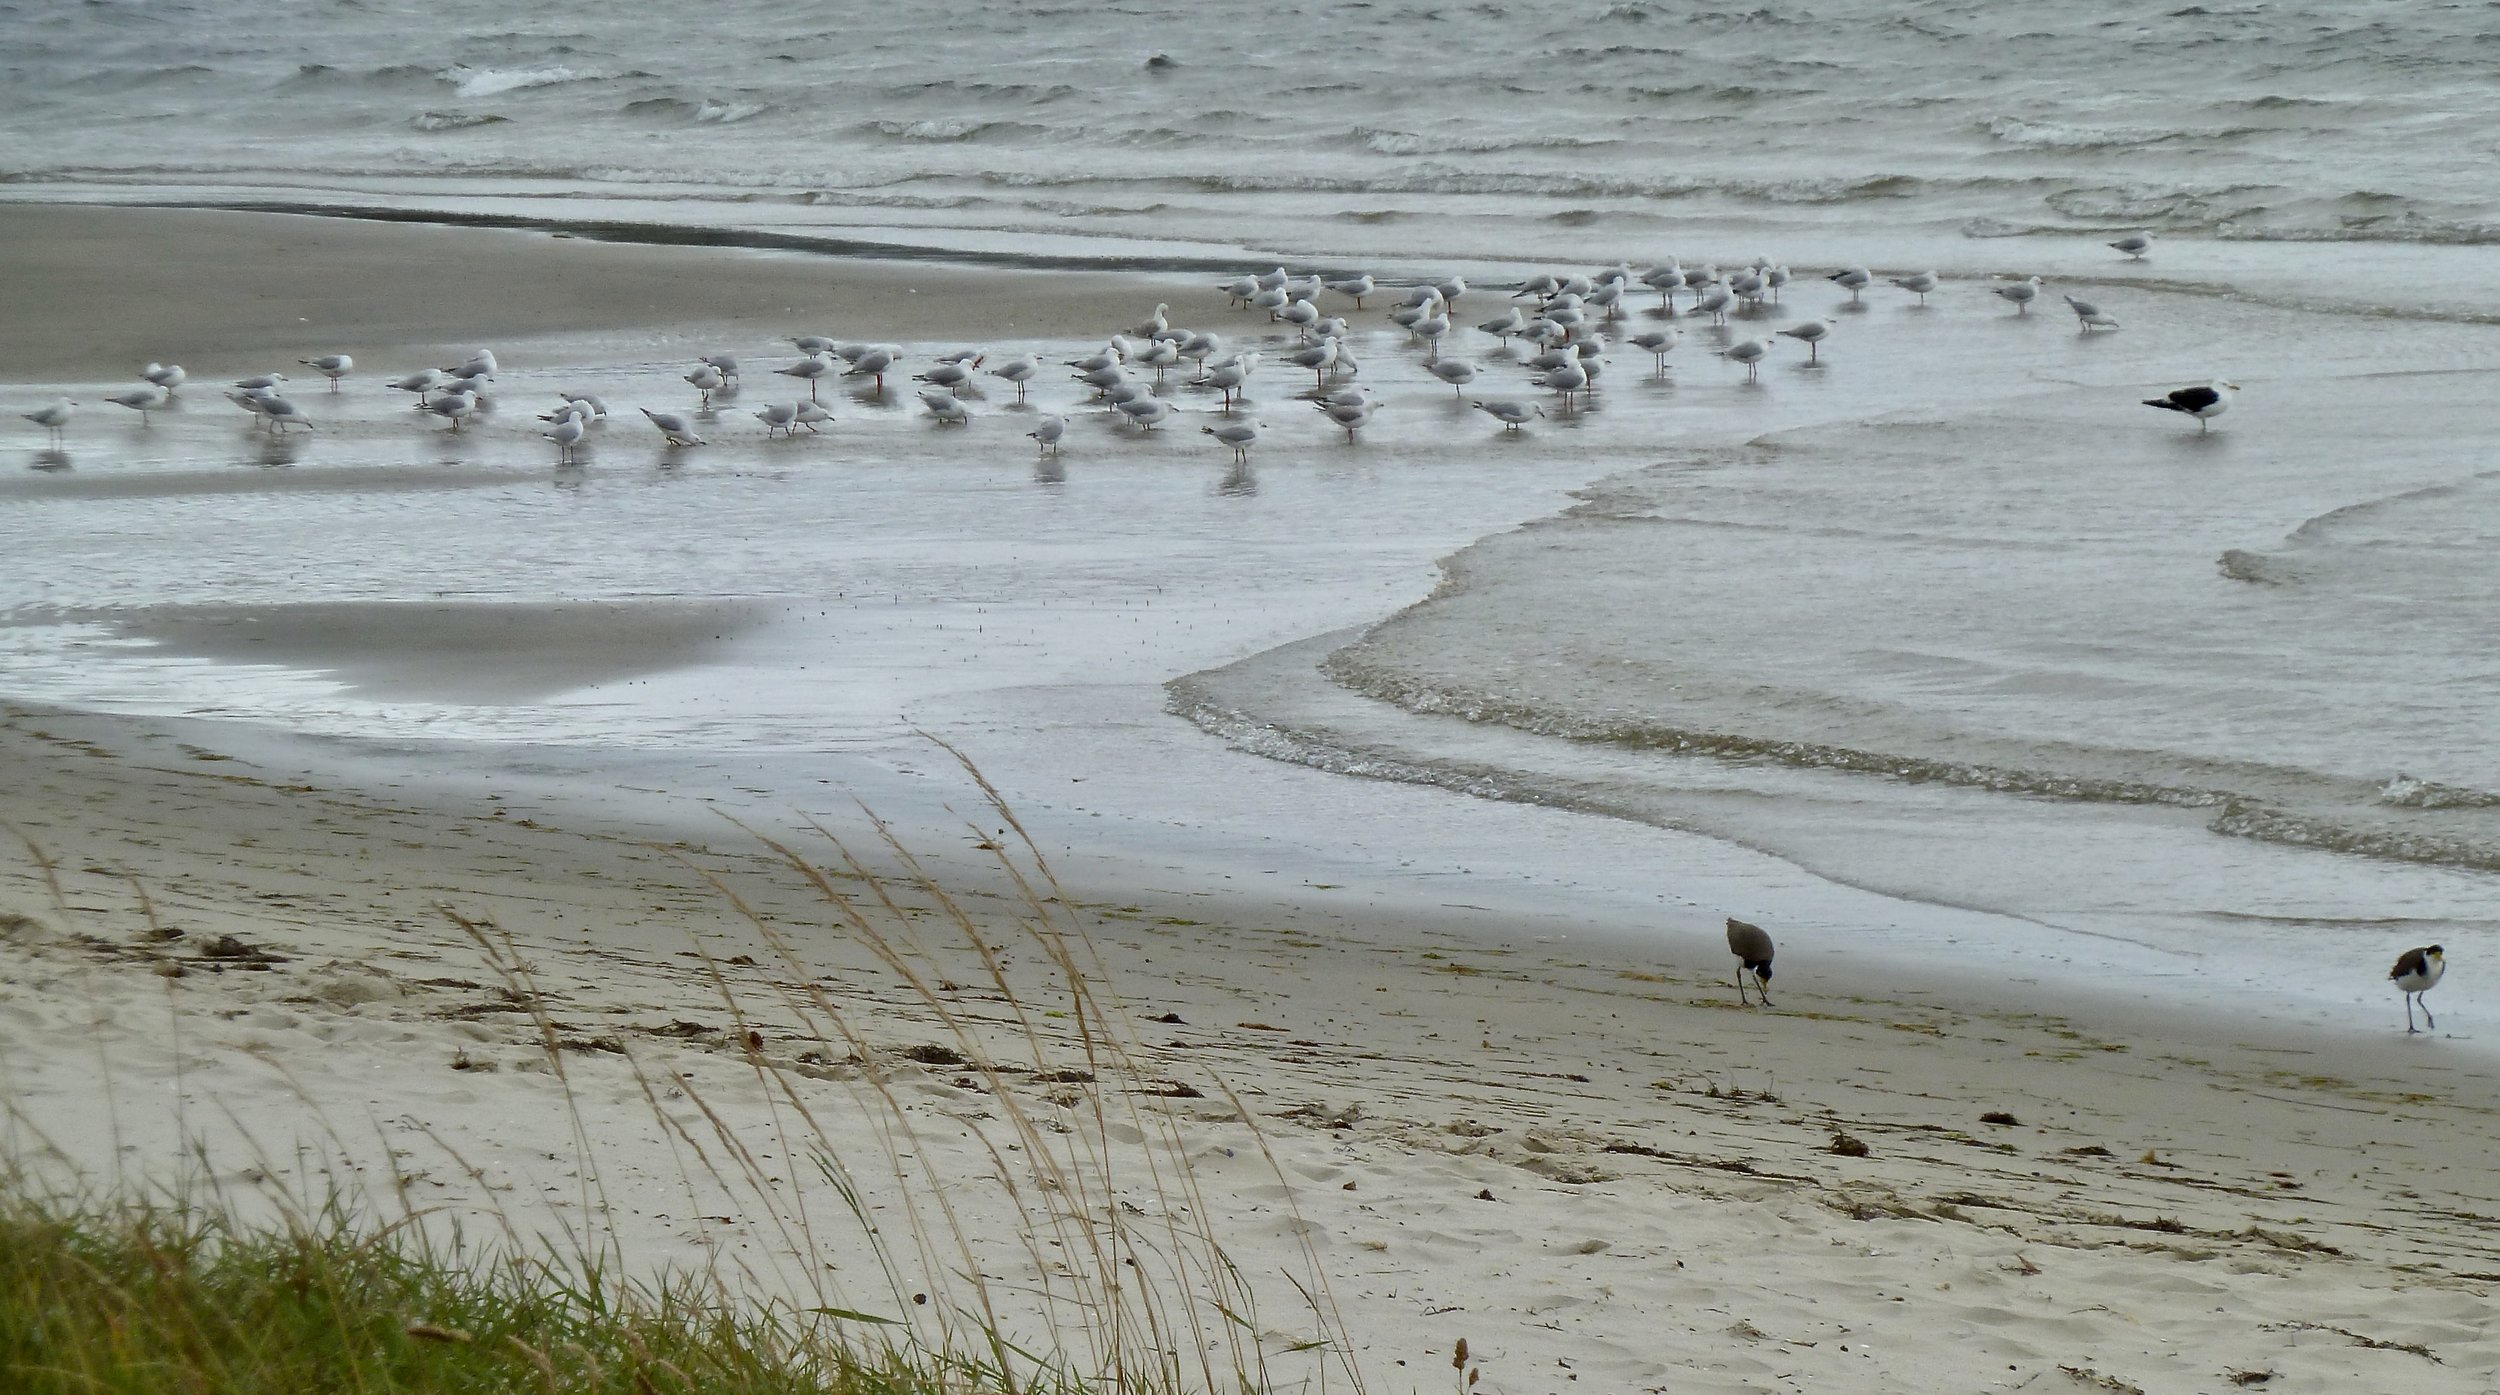 Many Silver Gulls, one large Pacific Gull, and two Masked Lapwings